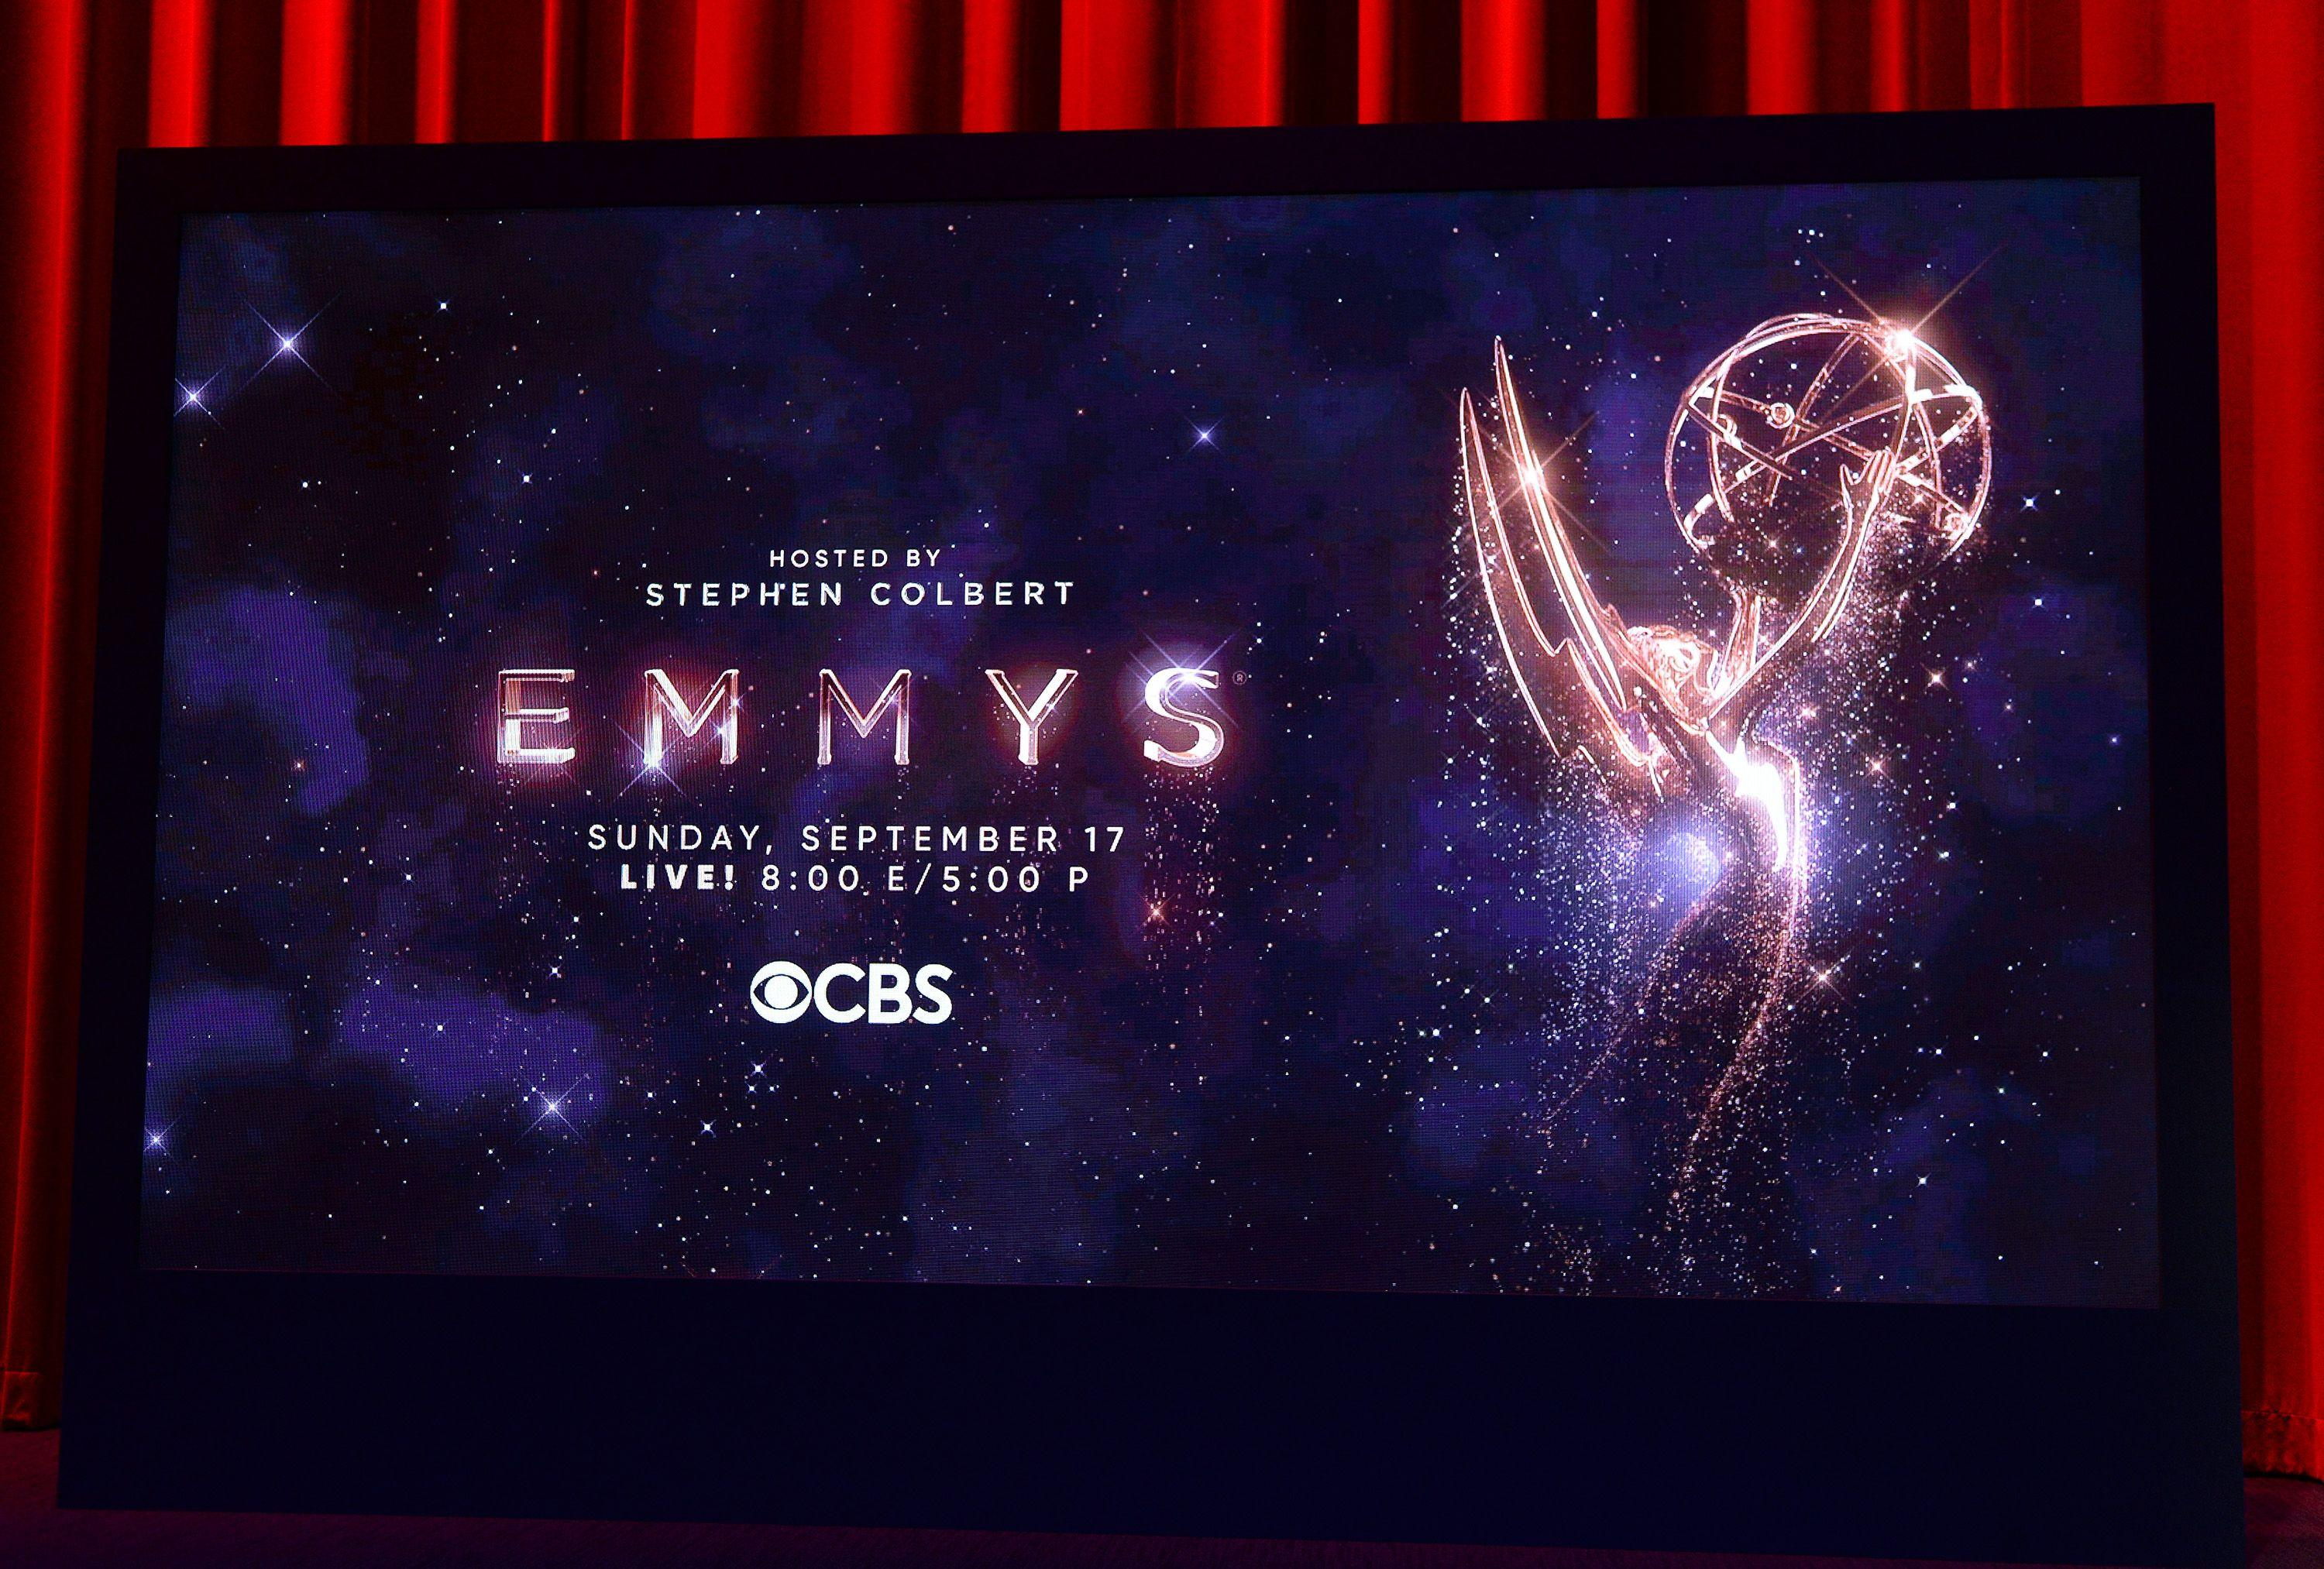 Emmy Awards Nominations: 'Westworld', 'This Is Us